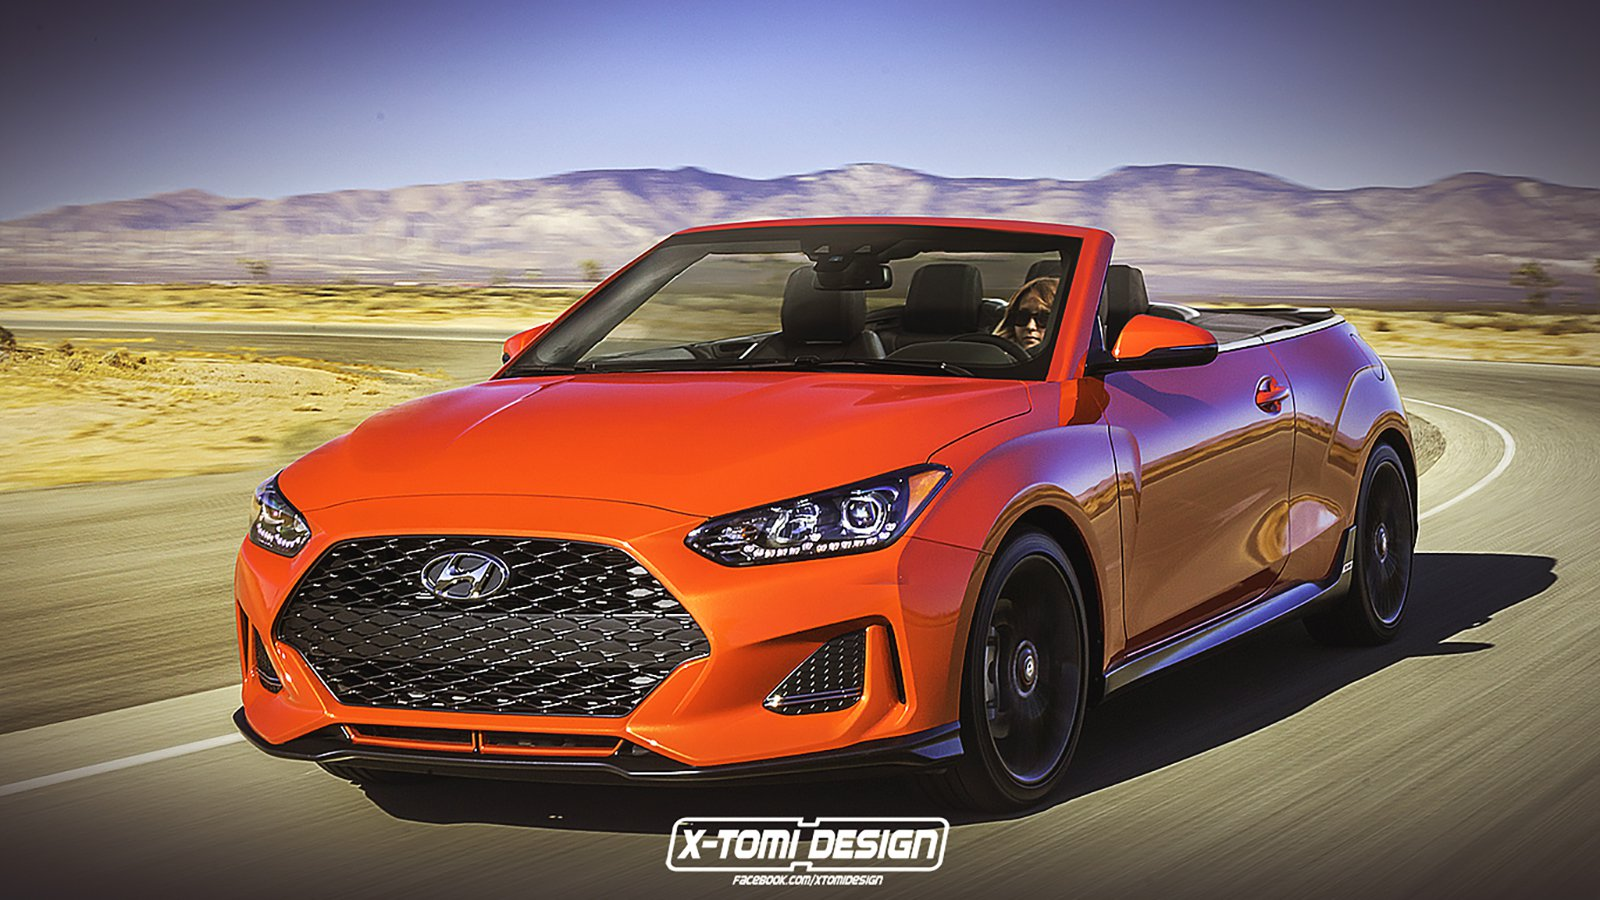 98 The Best 2020 Hyundai Veloster Turbo Reviews